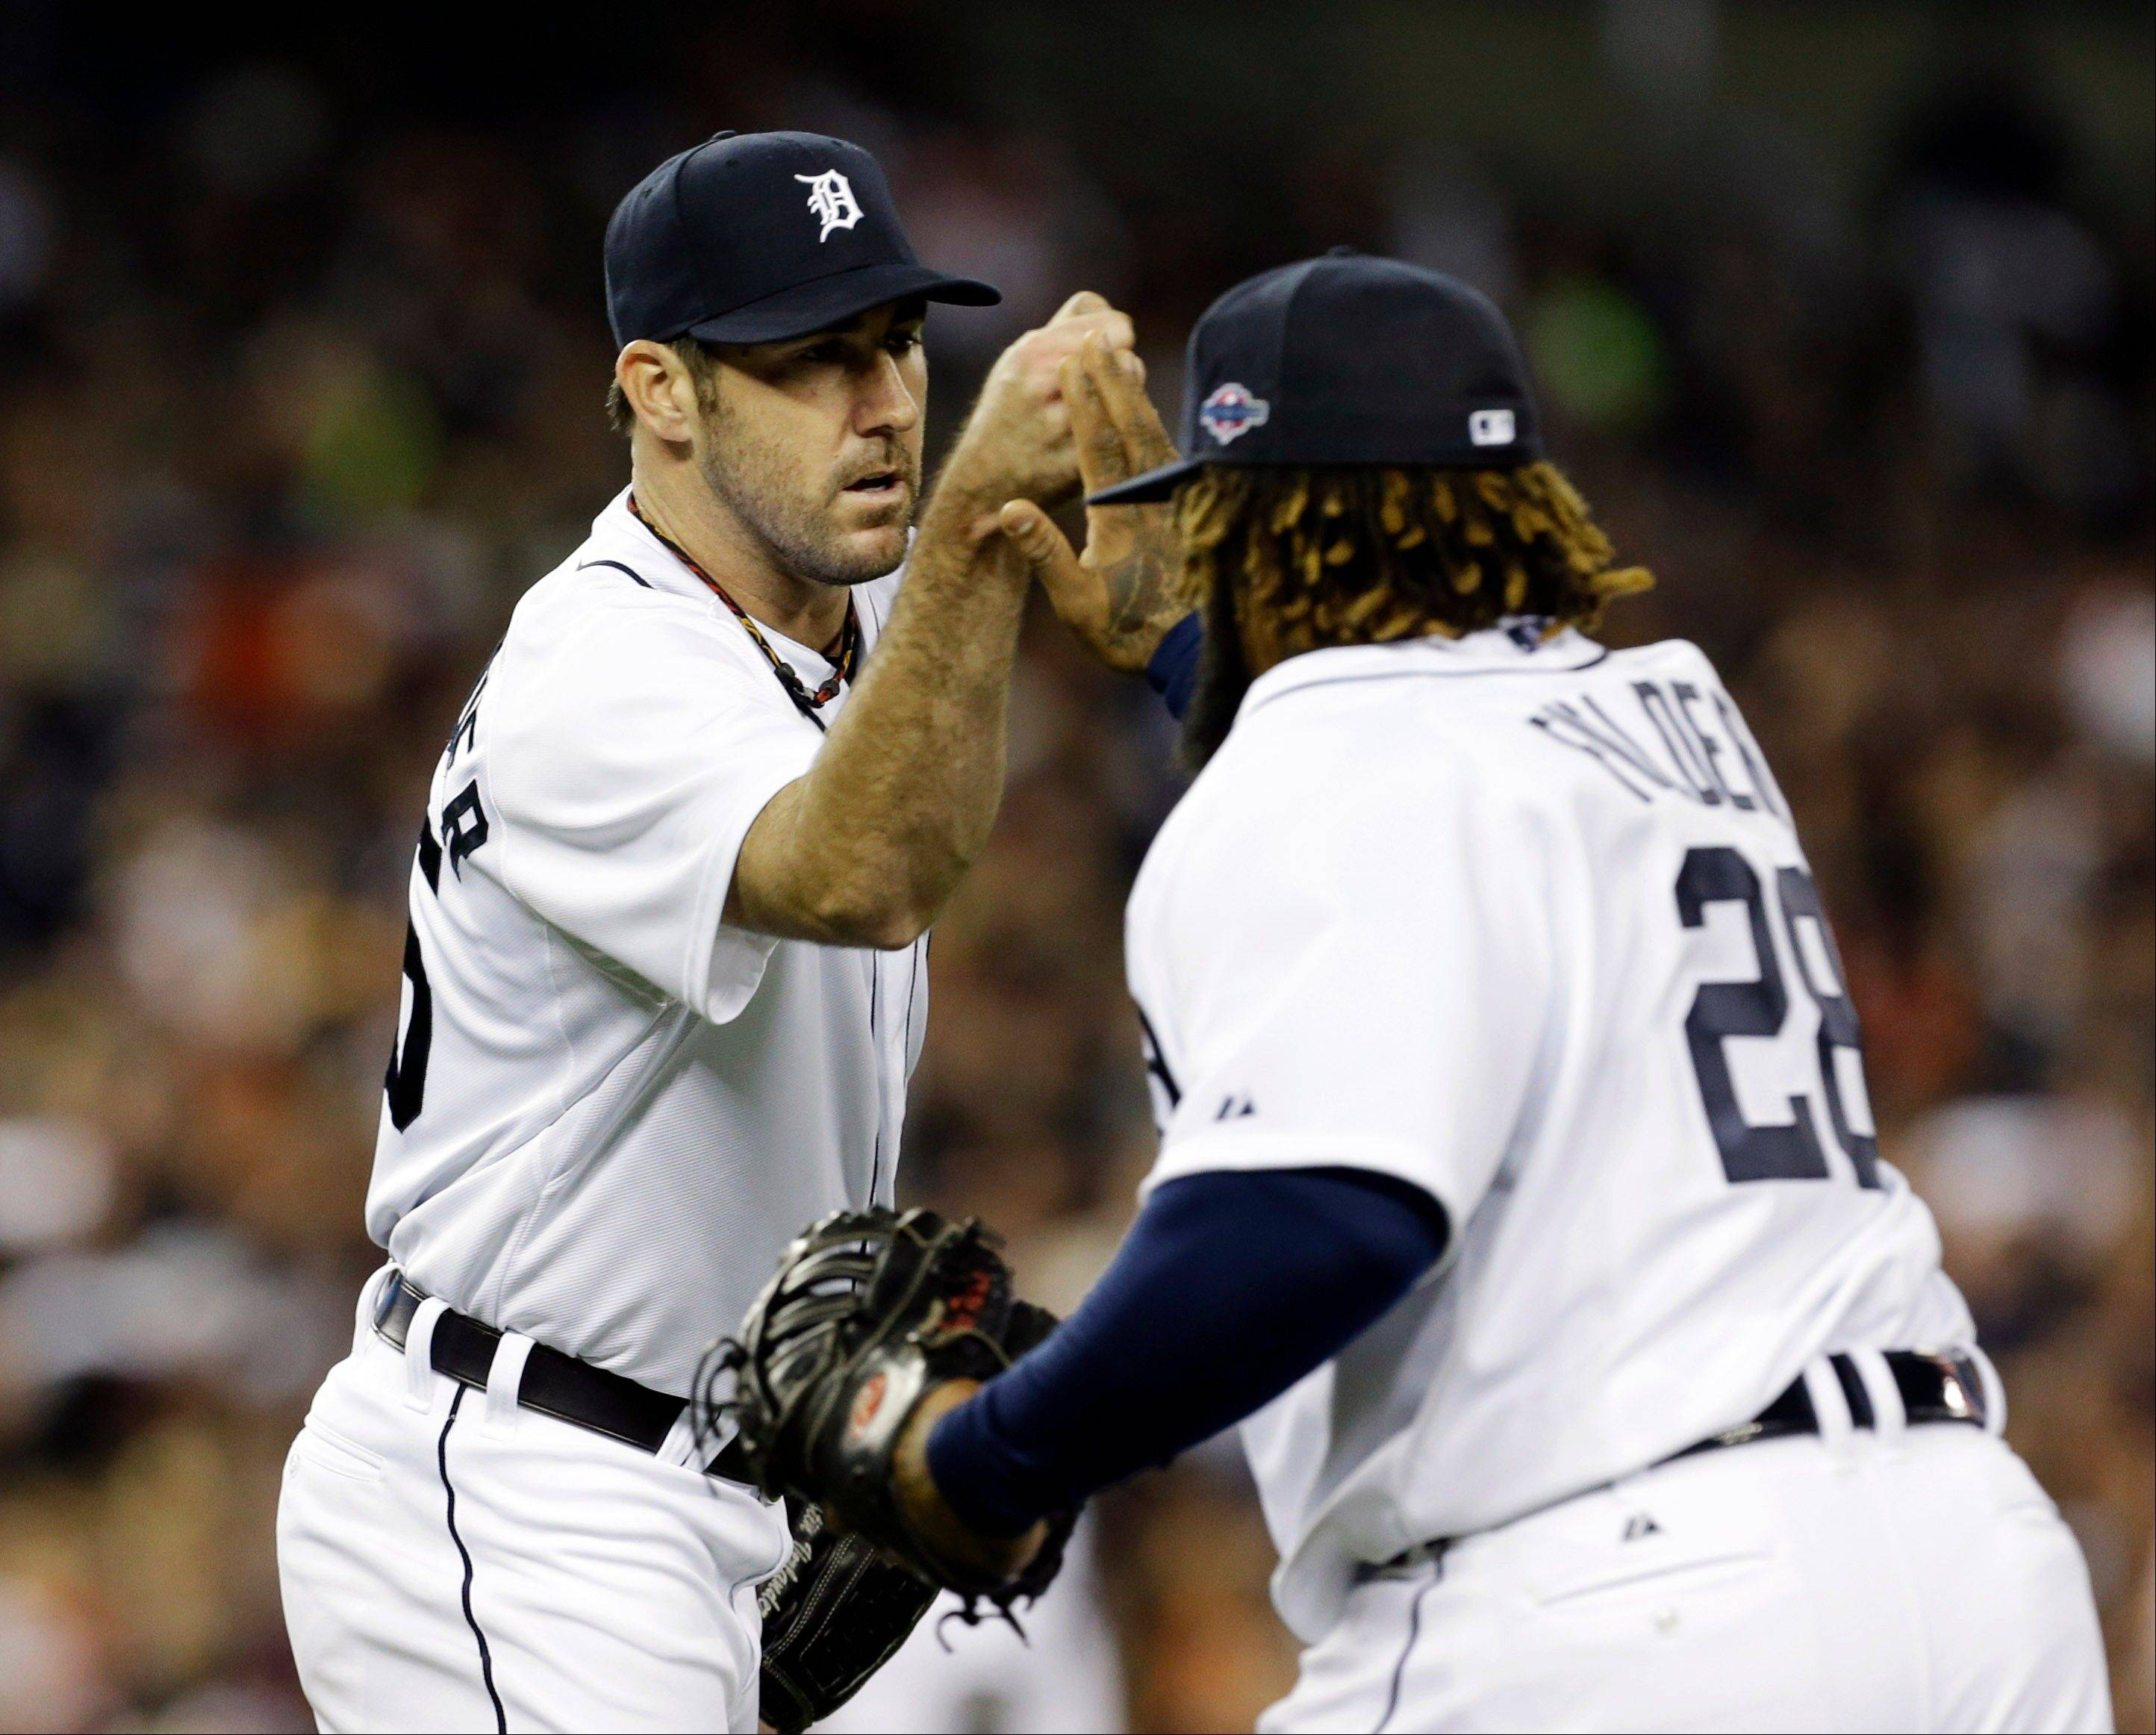 Detroit Tigers pitcher Justin Verlander congratulates first baseman Prince Fielder Tuesday after New York Yankees� Raul Ibanez grounded out to Fielder in the seventh inning during Game 3 of the American League championship series in Detroit.